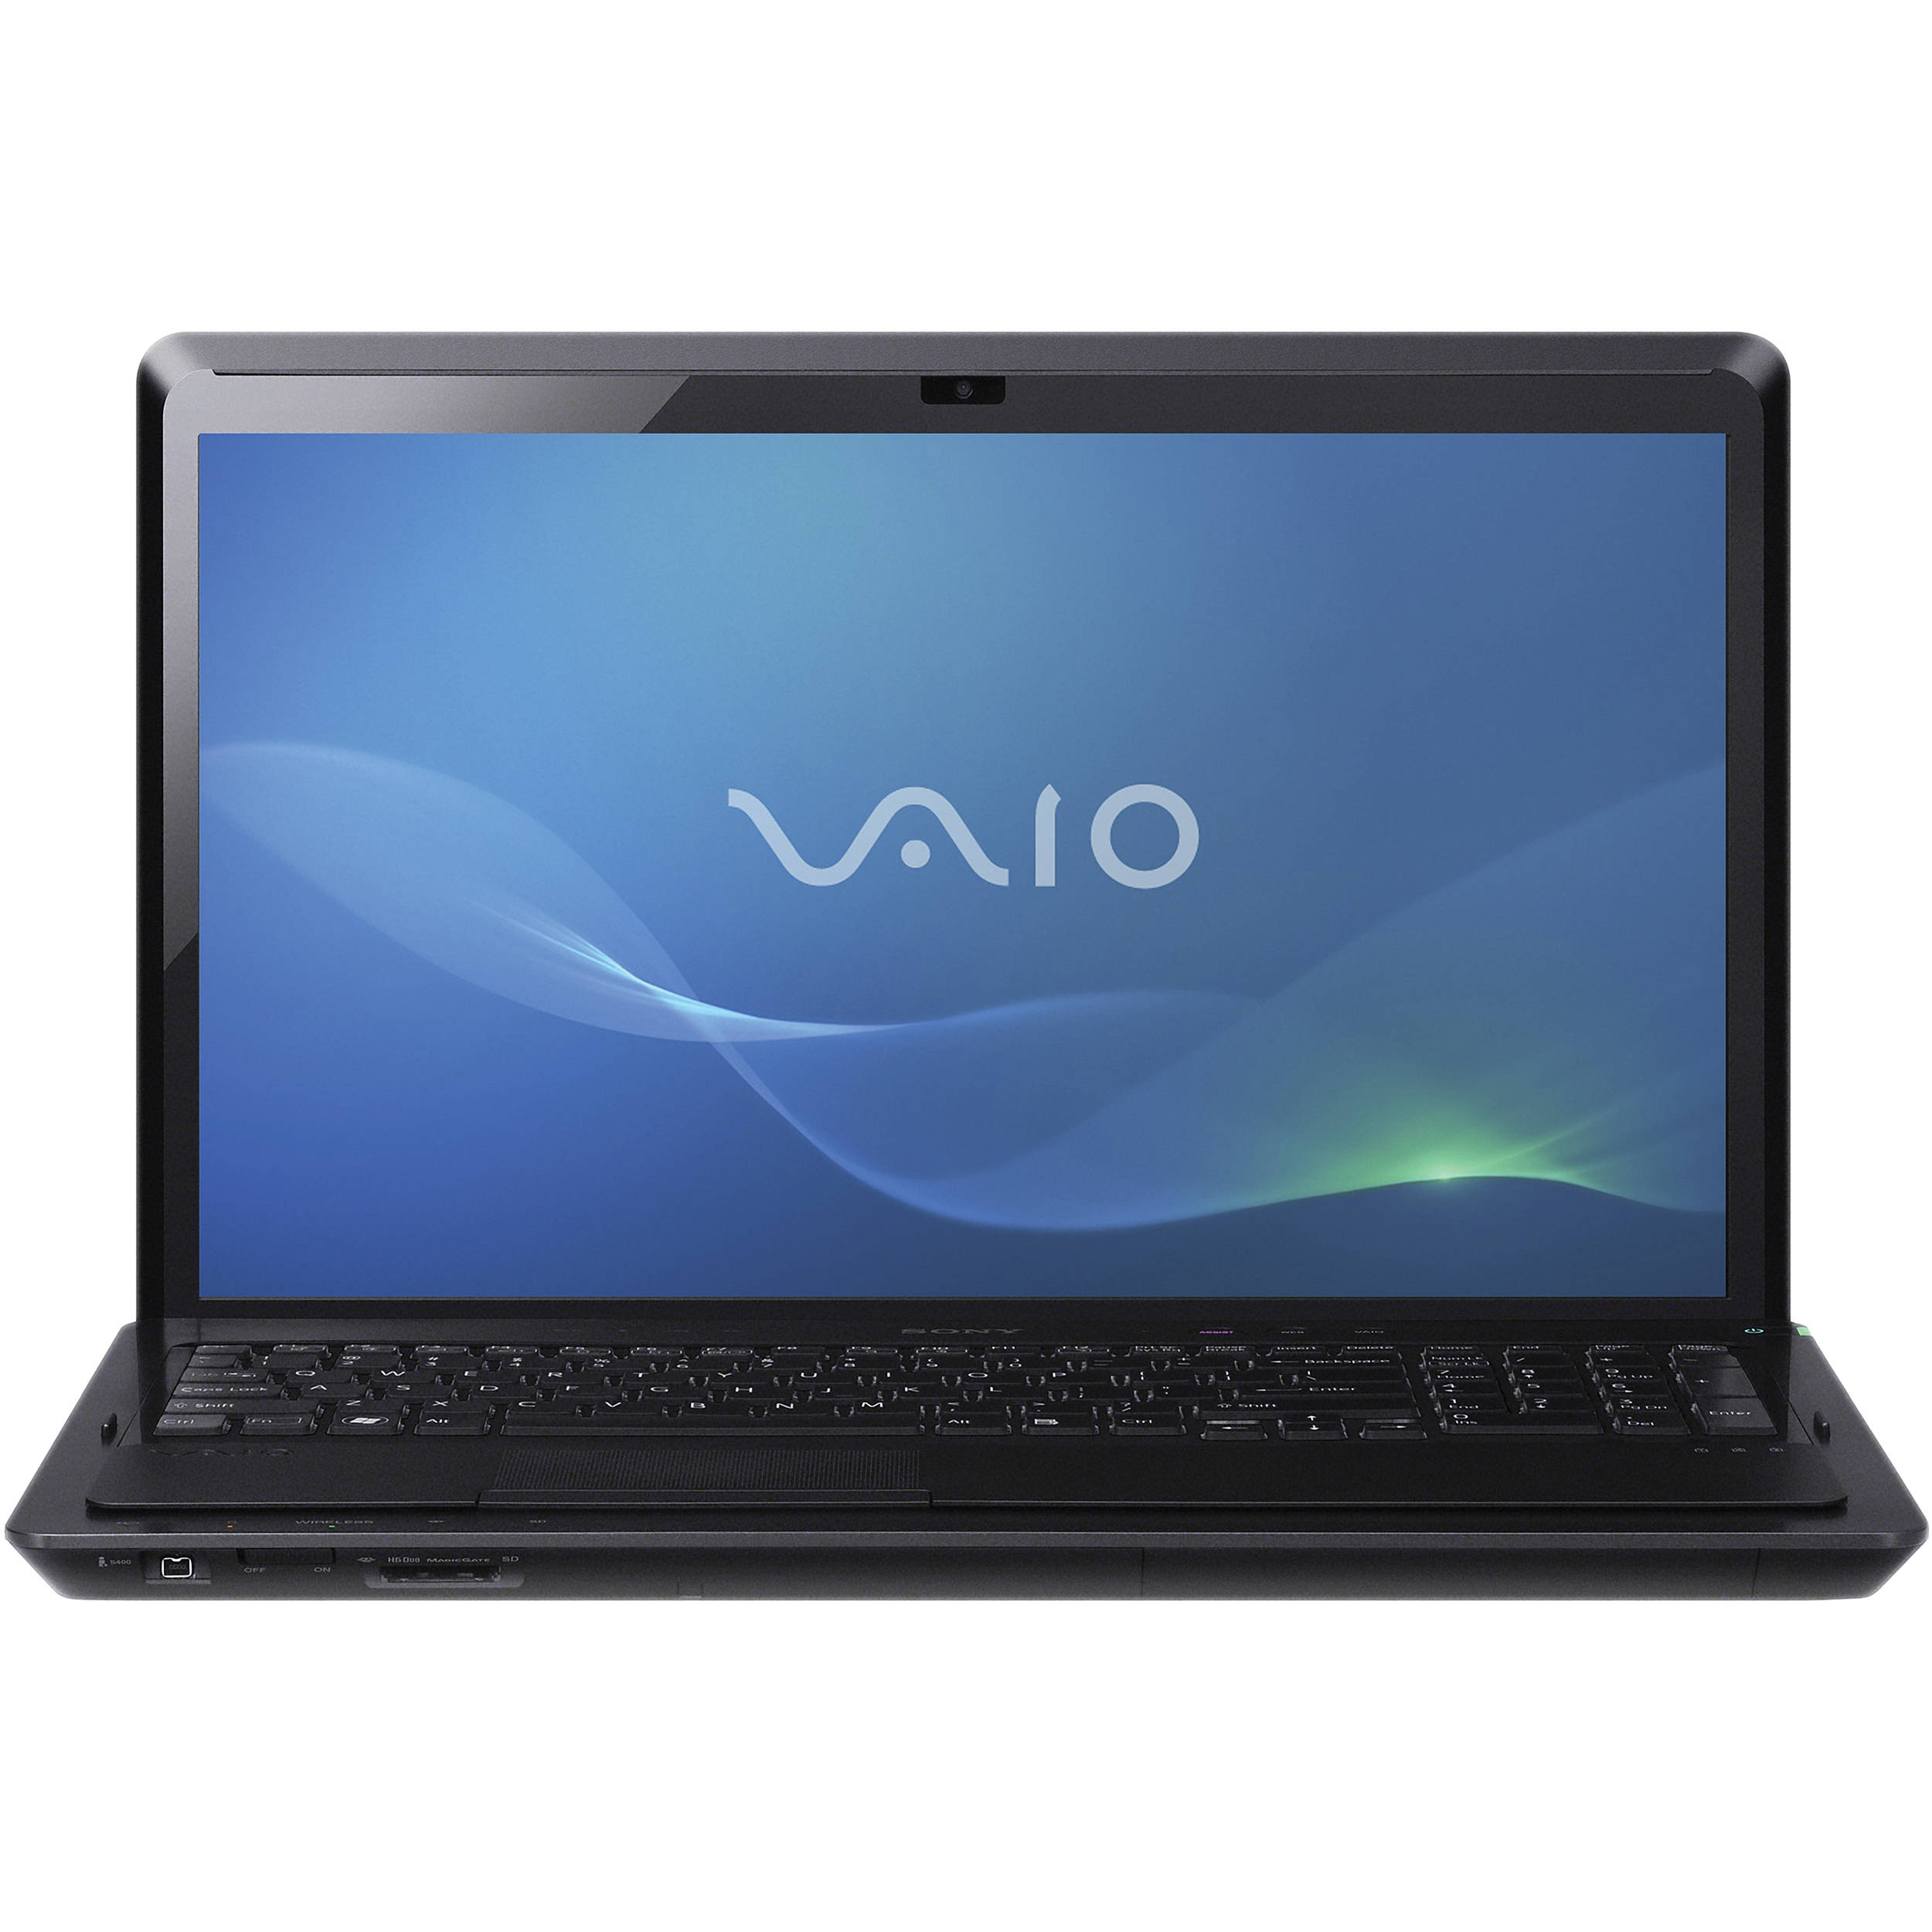 Sony Vaio VPCF223FX Smart Network Drivers Download